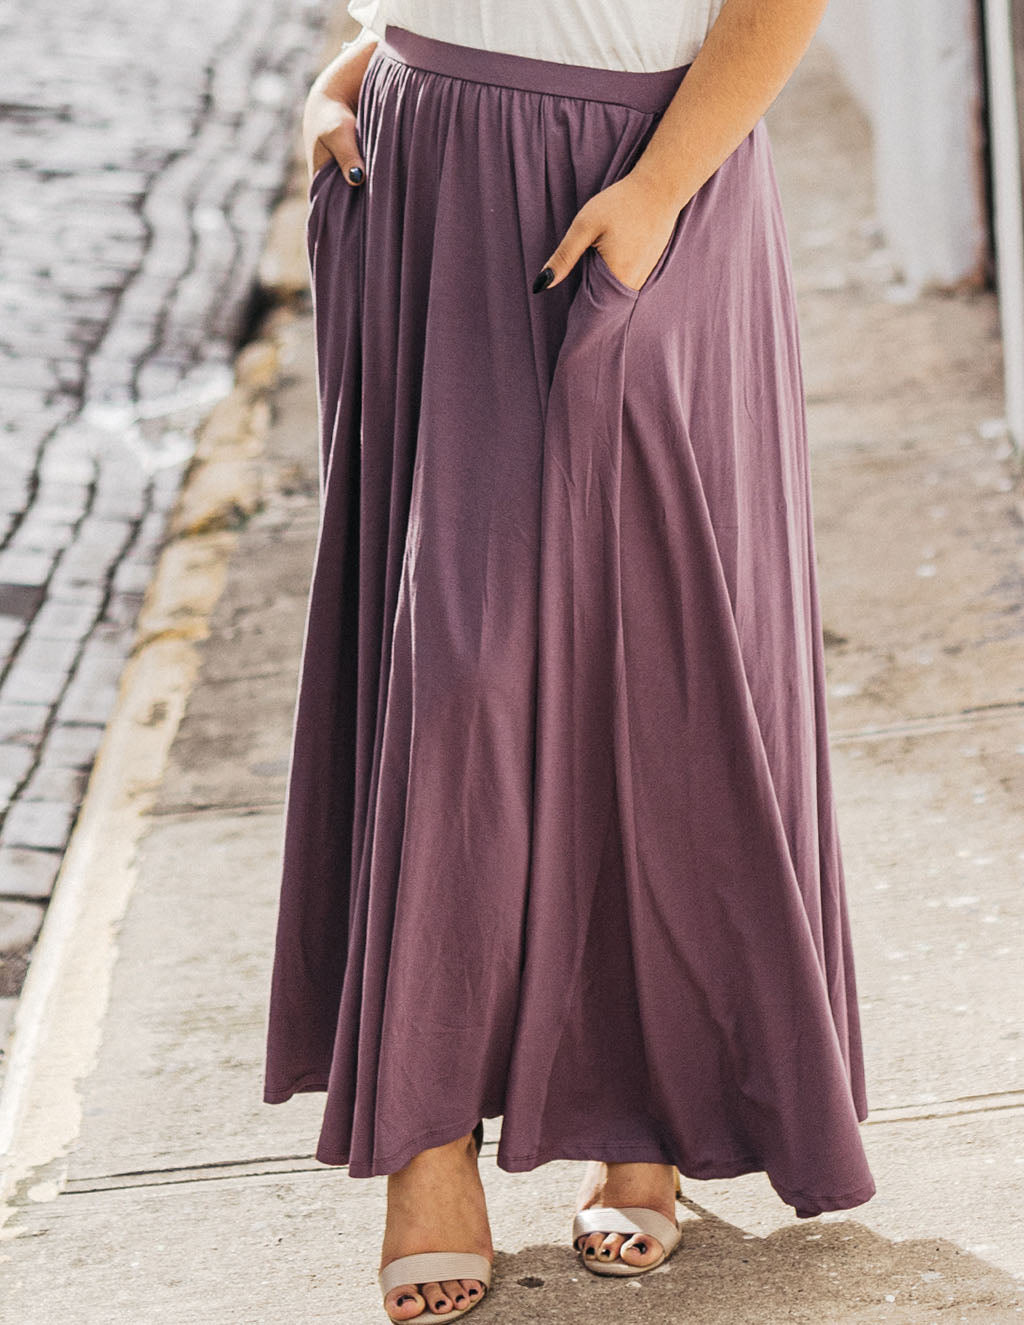 LEIGH maxi skirt in Vintage Violet